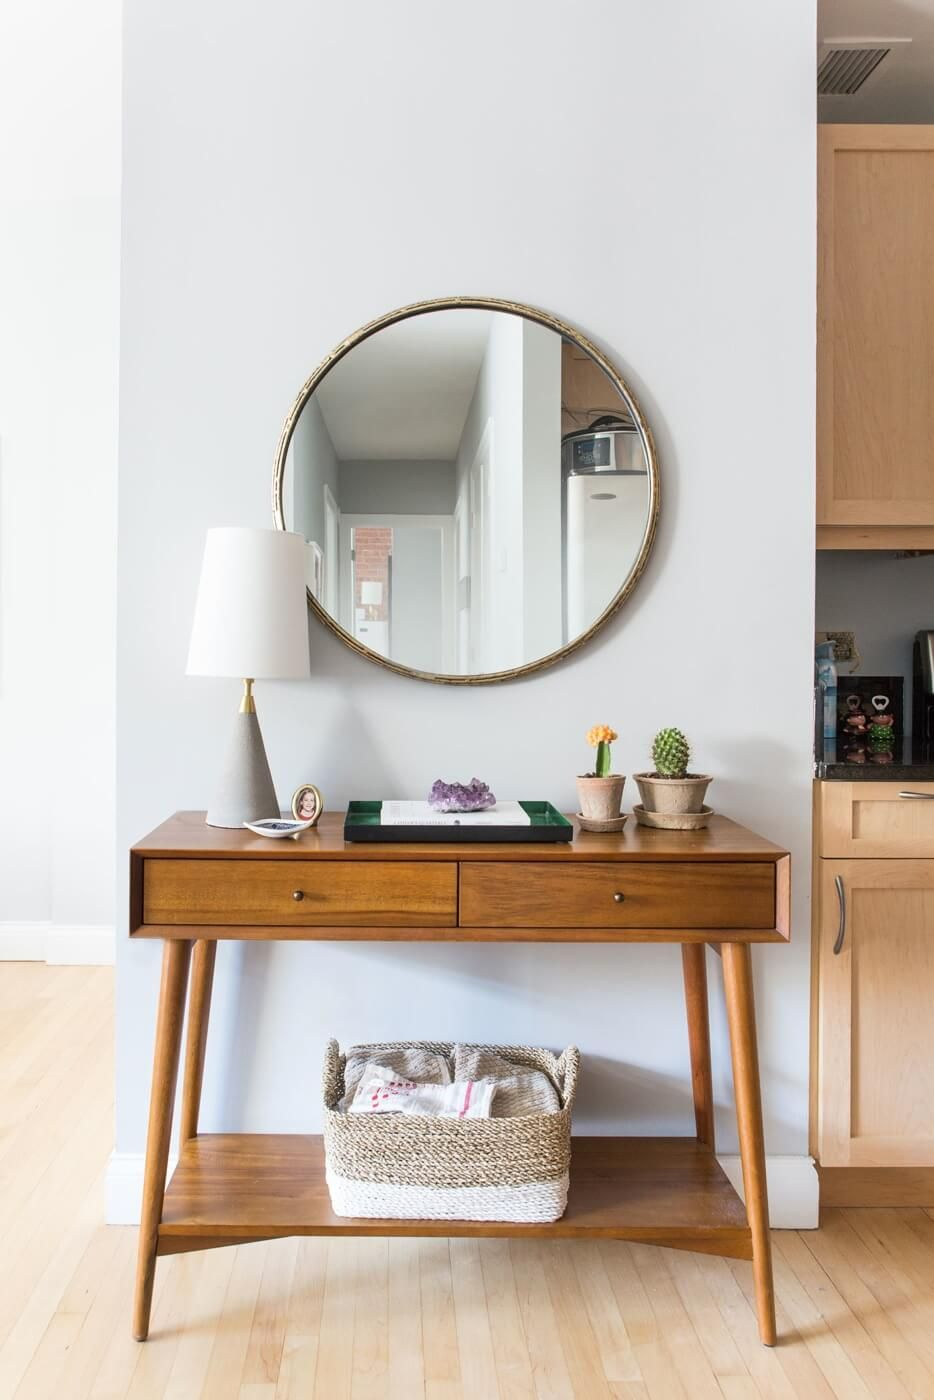 Spotted The Mid Century Console From West Elm Interior Design I